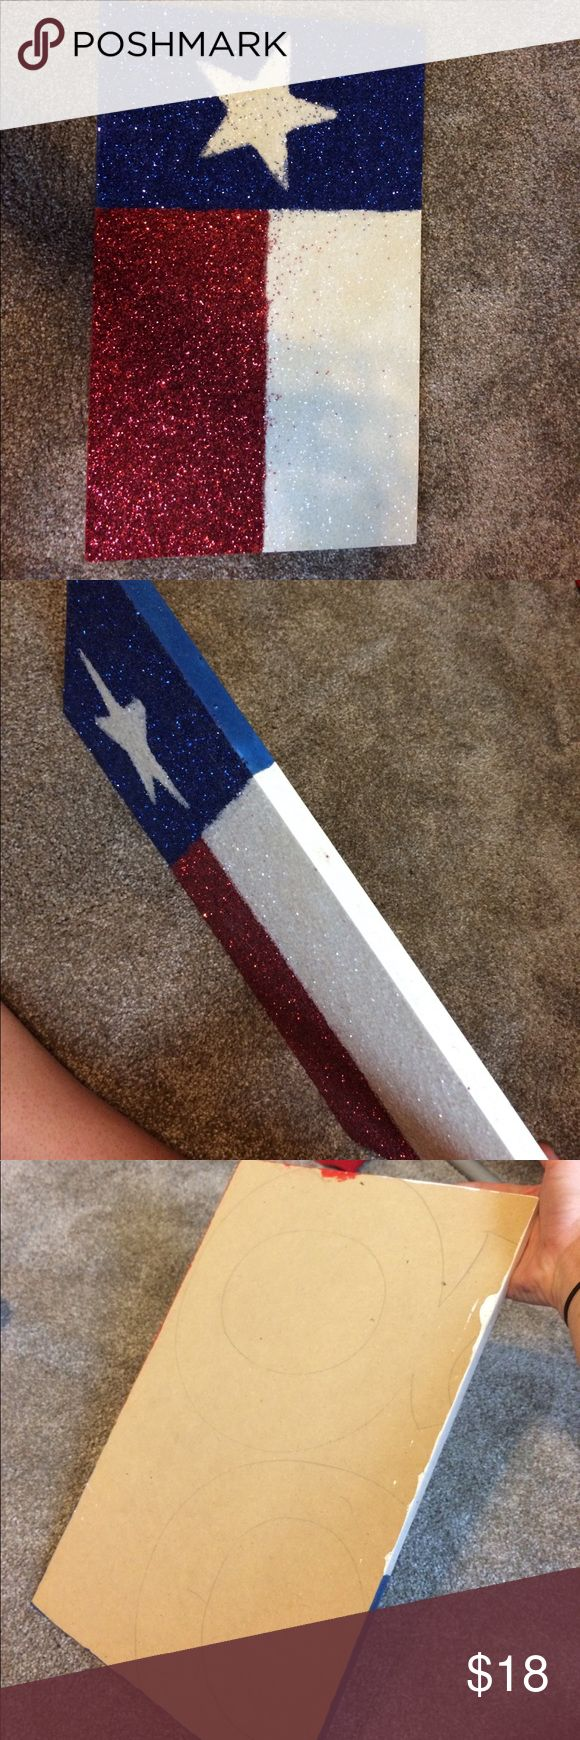 Texas wood wall decor Hand made Texas flag wood wall decor. (Wood is hand cut so not completely straight lines) Other